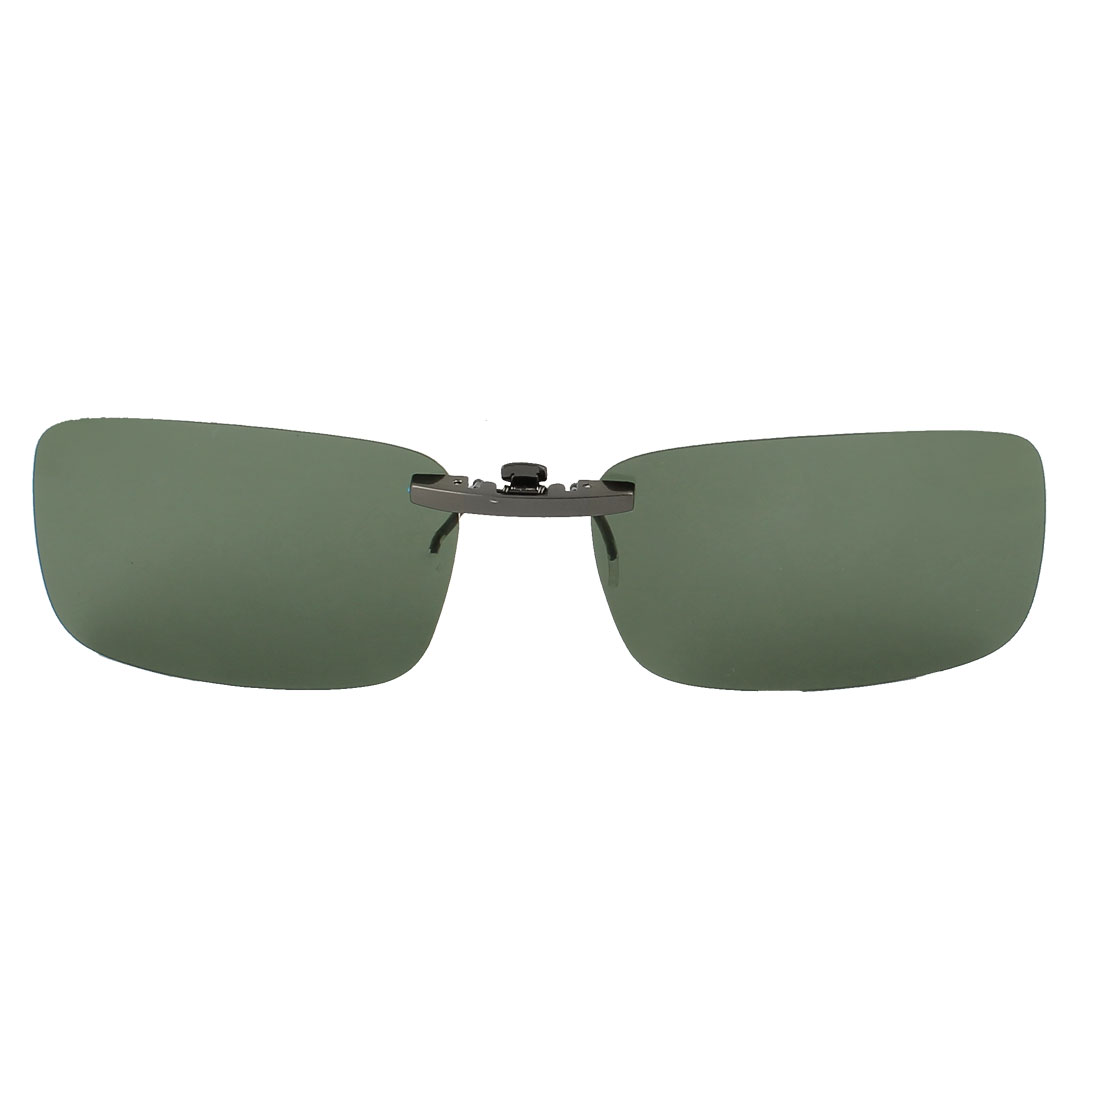 Unisex Hiking Travel Rectangle Dark Green Lens Rimless Clip On Polarized Sunglasses Glasses Eyewear Protector